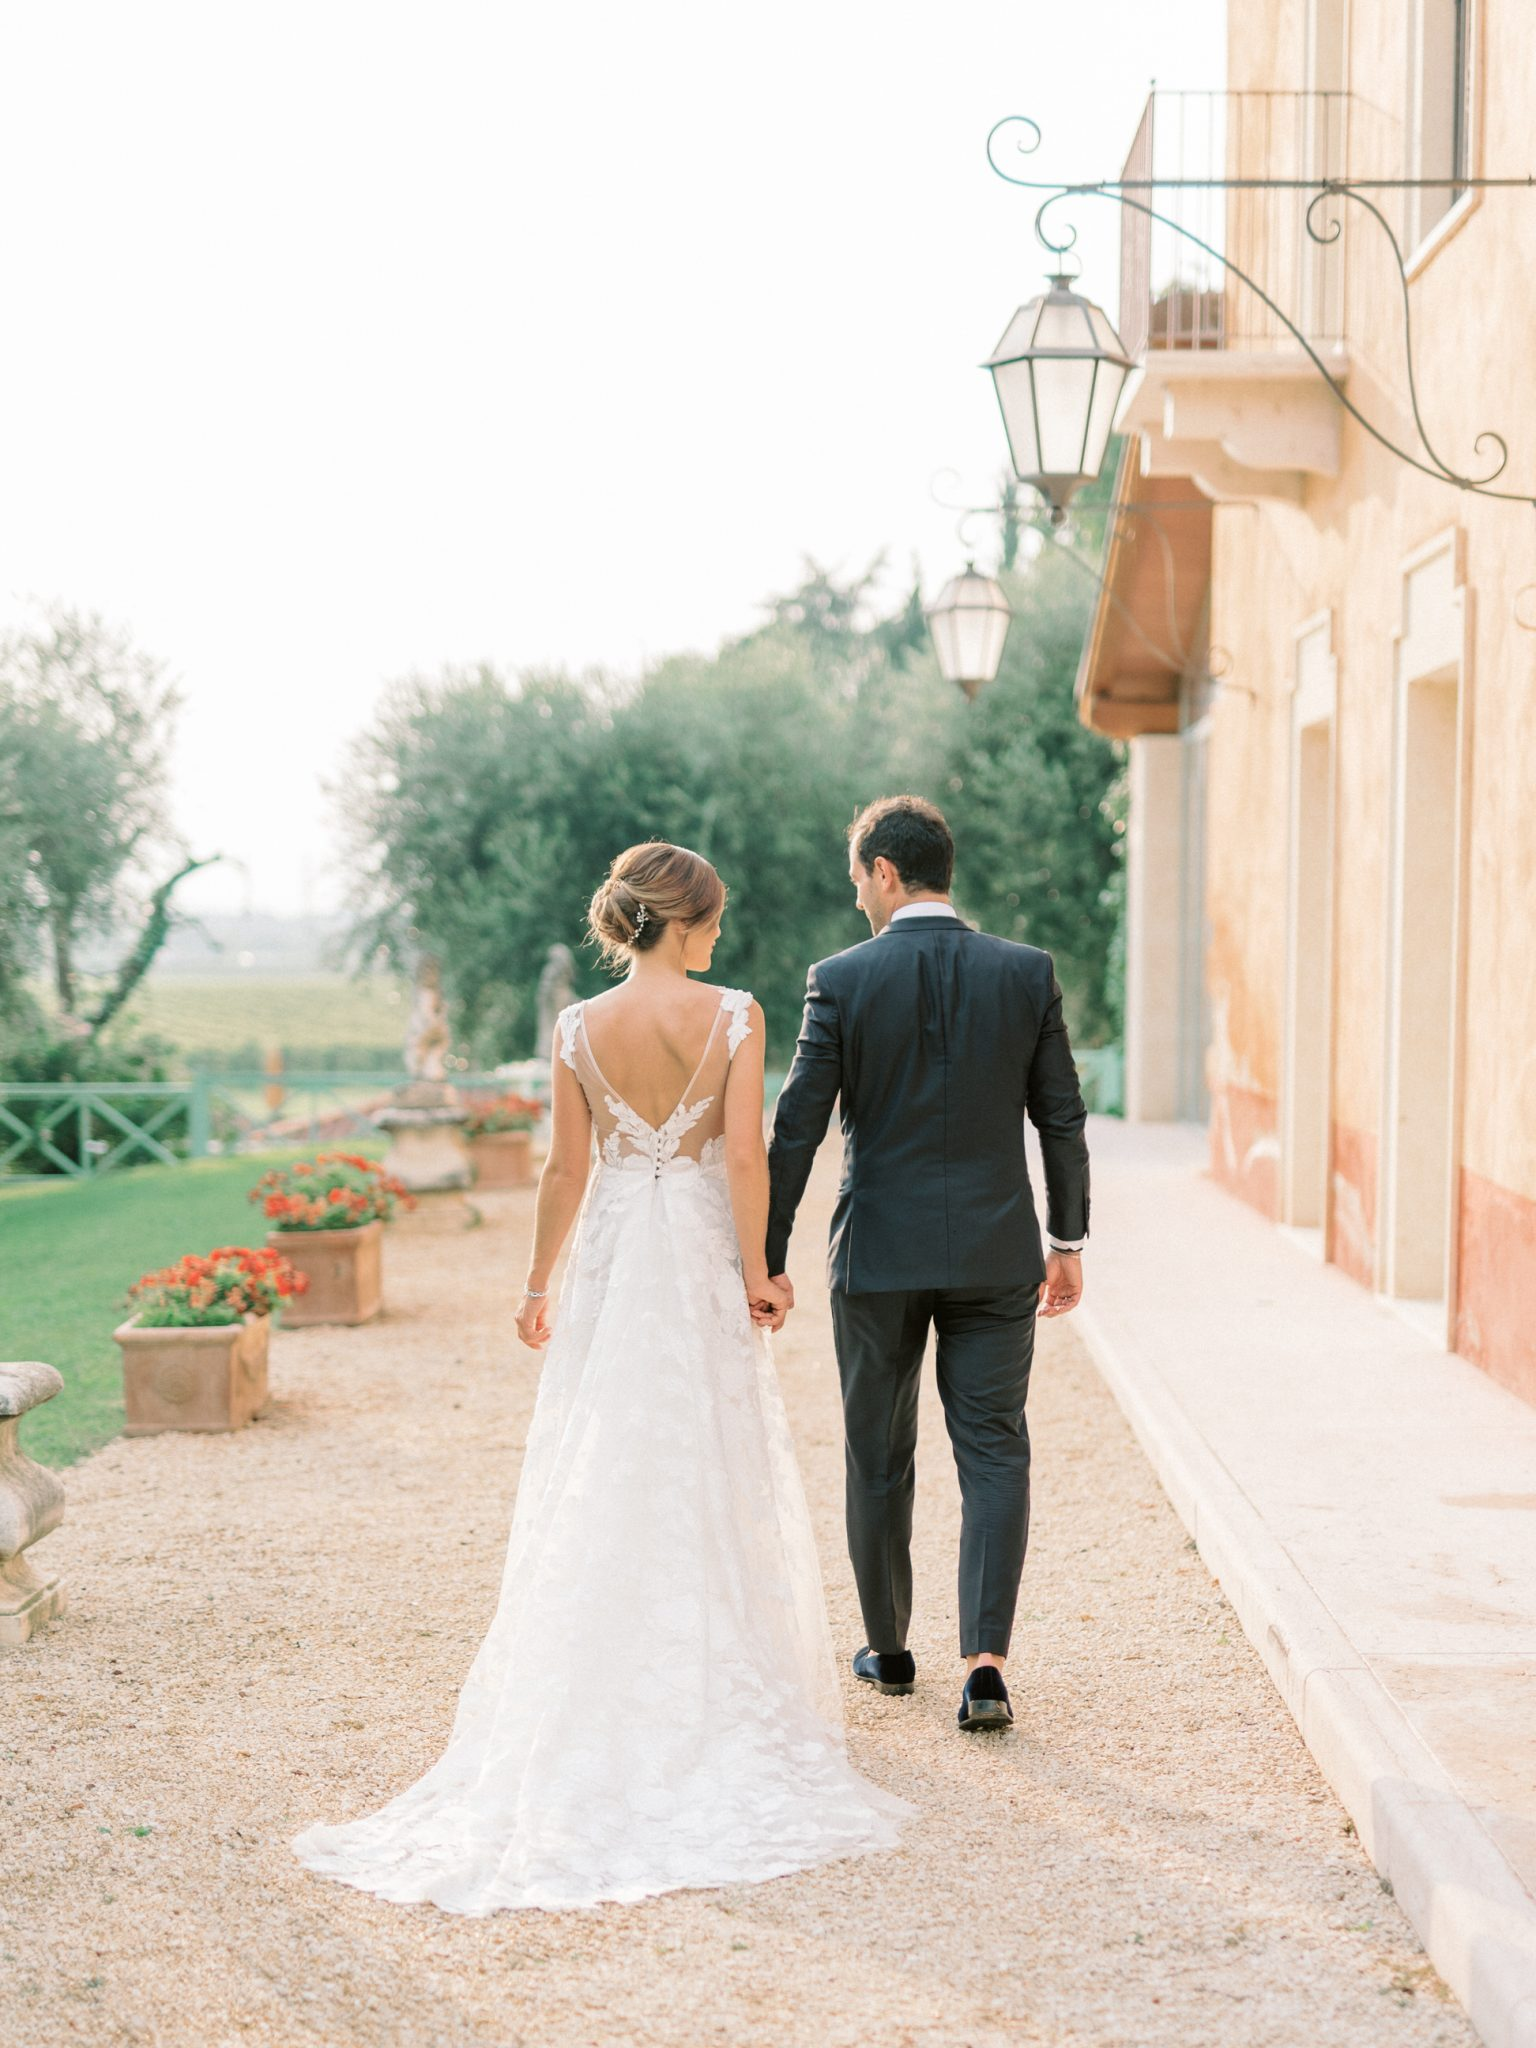 Wedding Villa Cordevigo, Italy Photographer